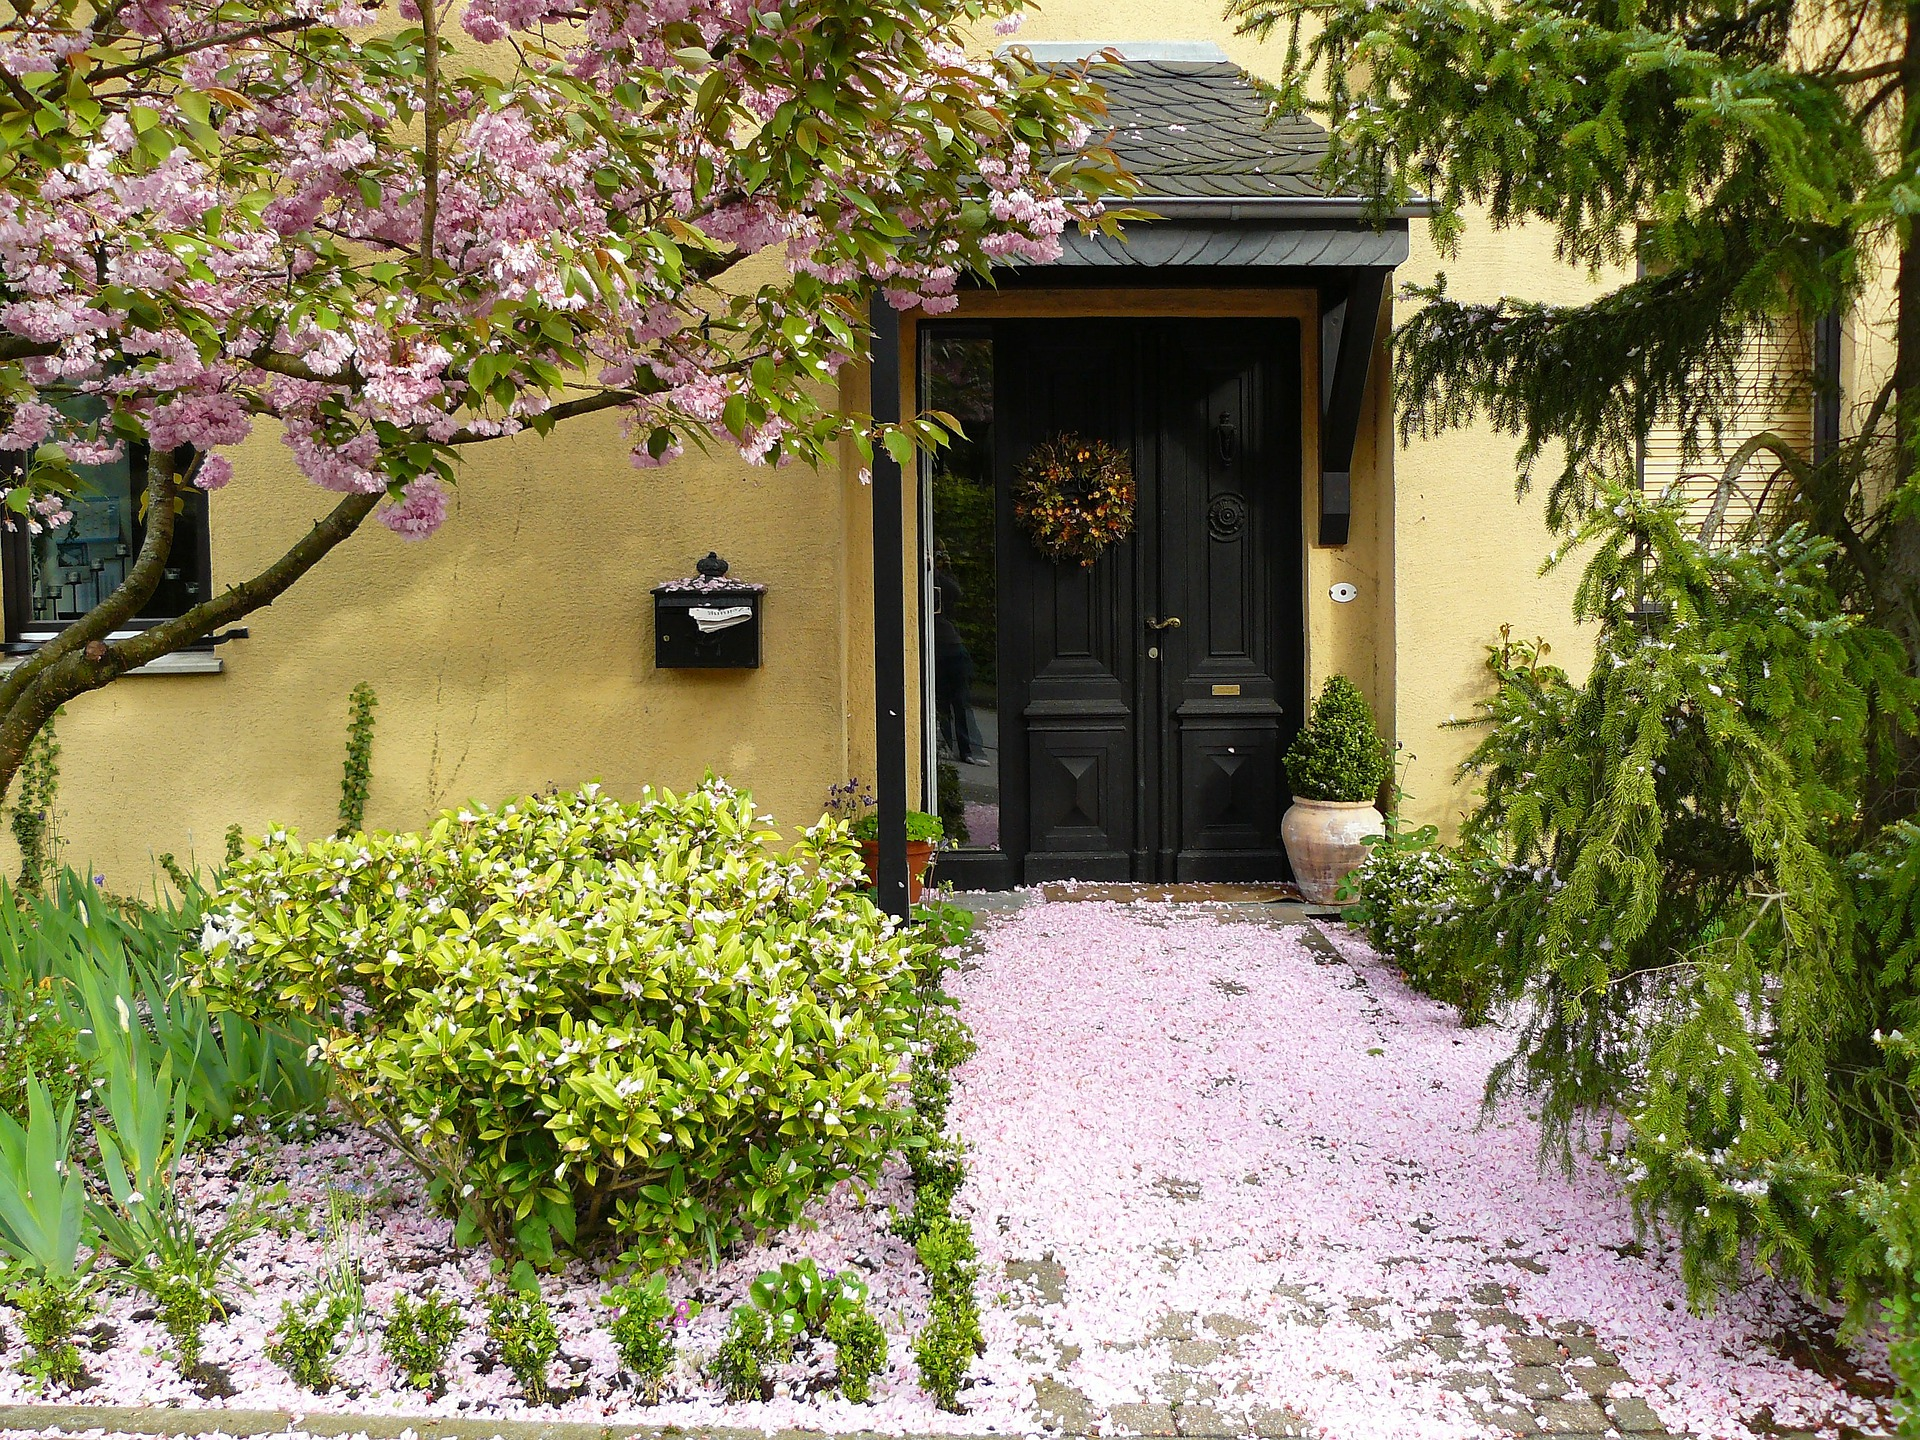 entrance to home with black door, trimmed trees, flowers and bushes